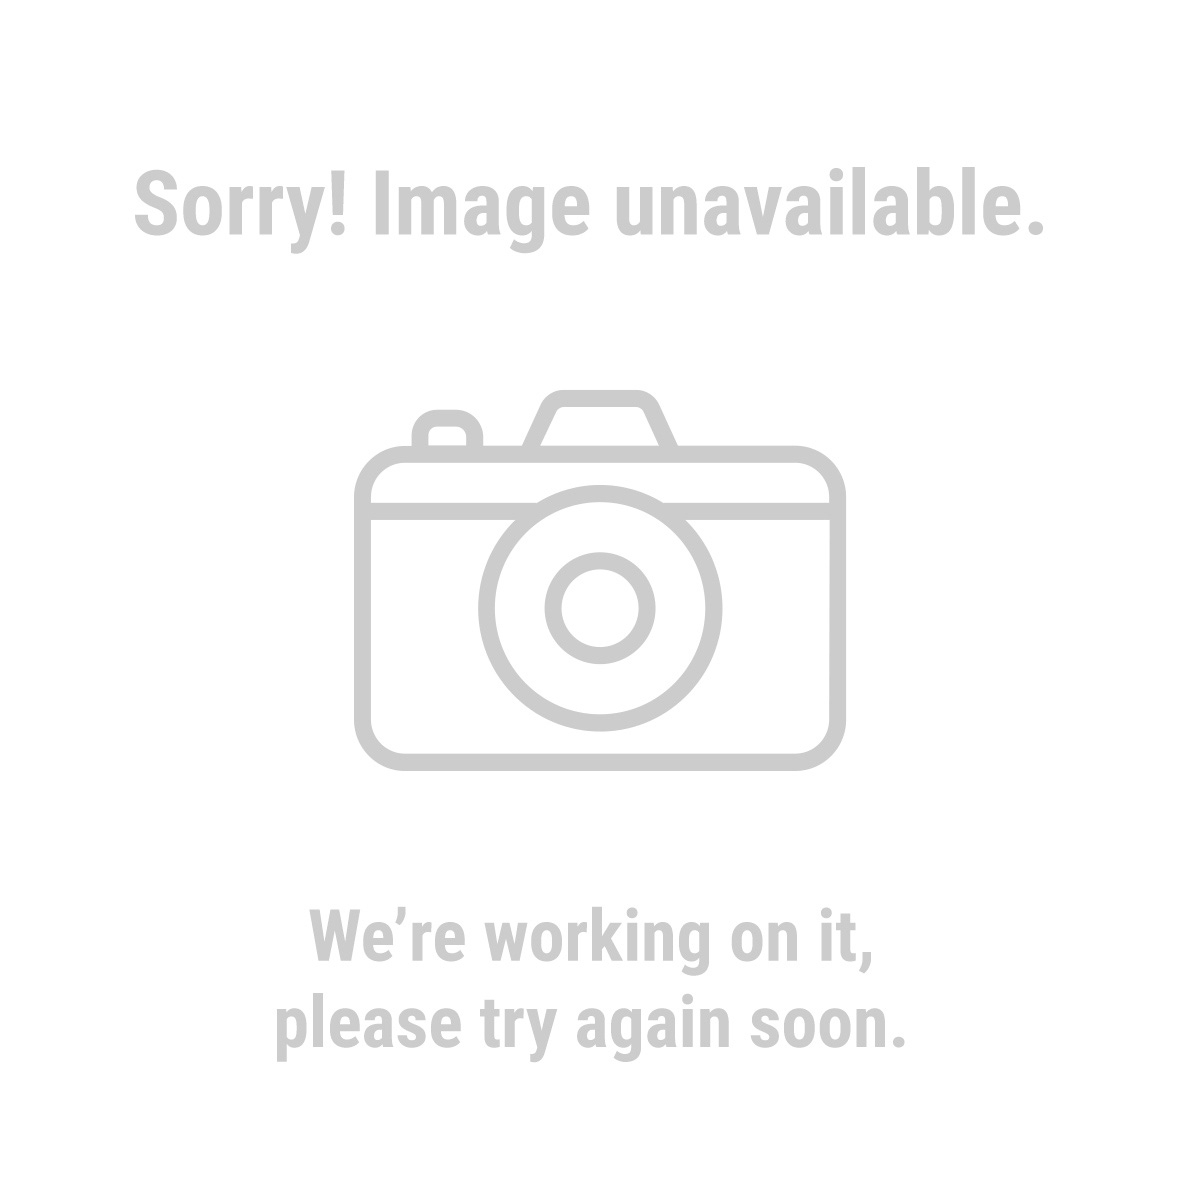 Central-Machinery 42806 Quick Change Tool Post Set for Mini Lathe